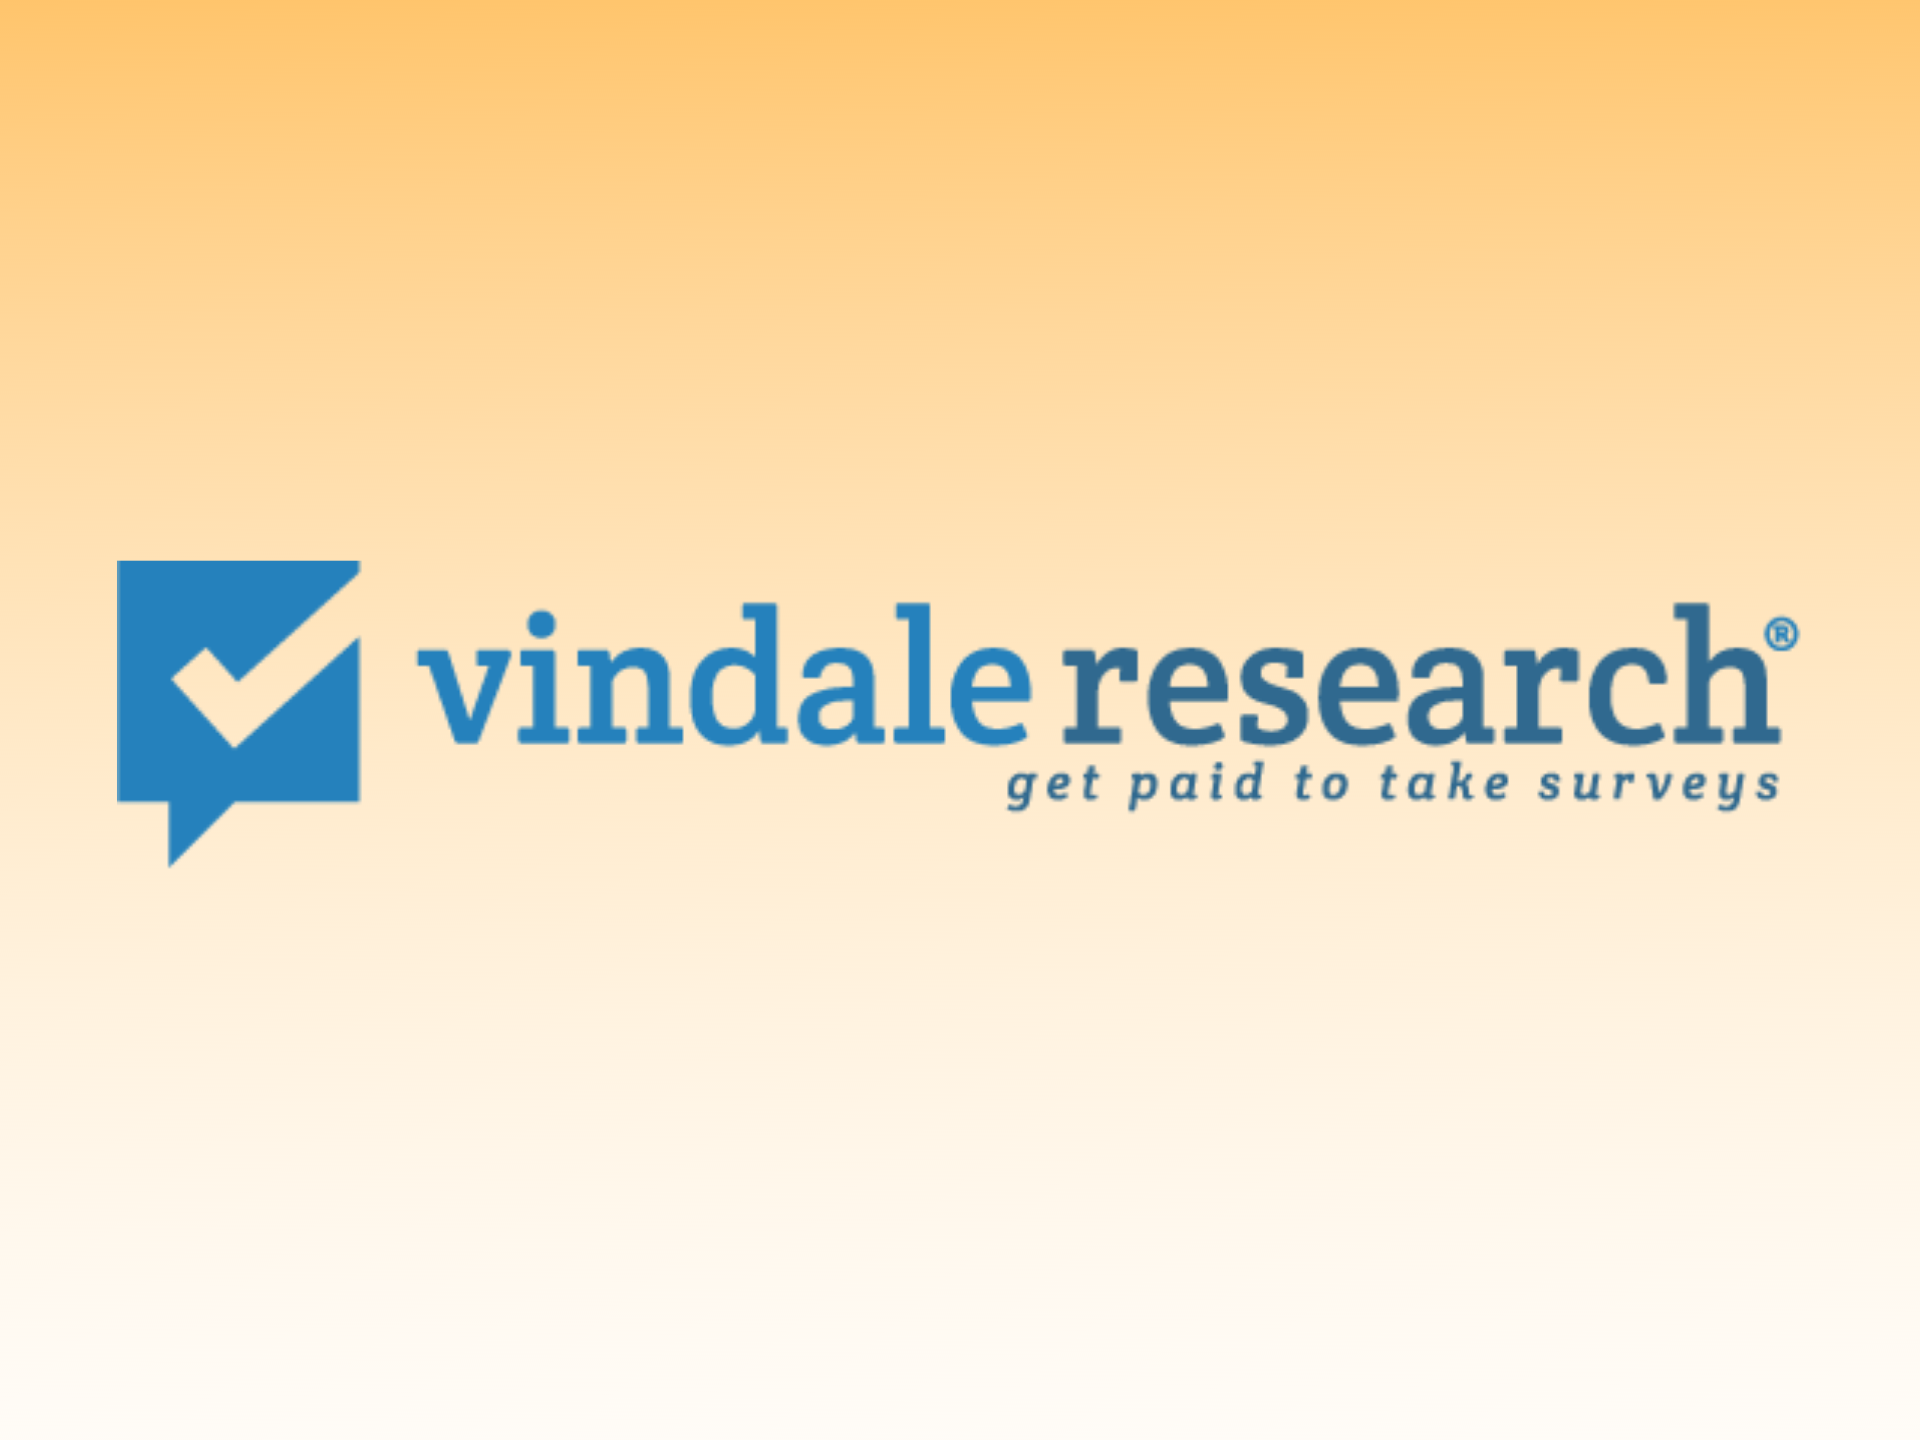 vindale-research-review